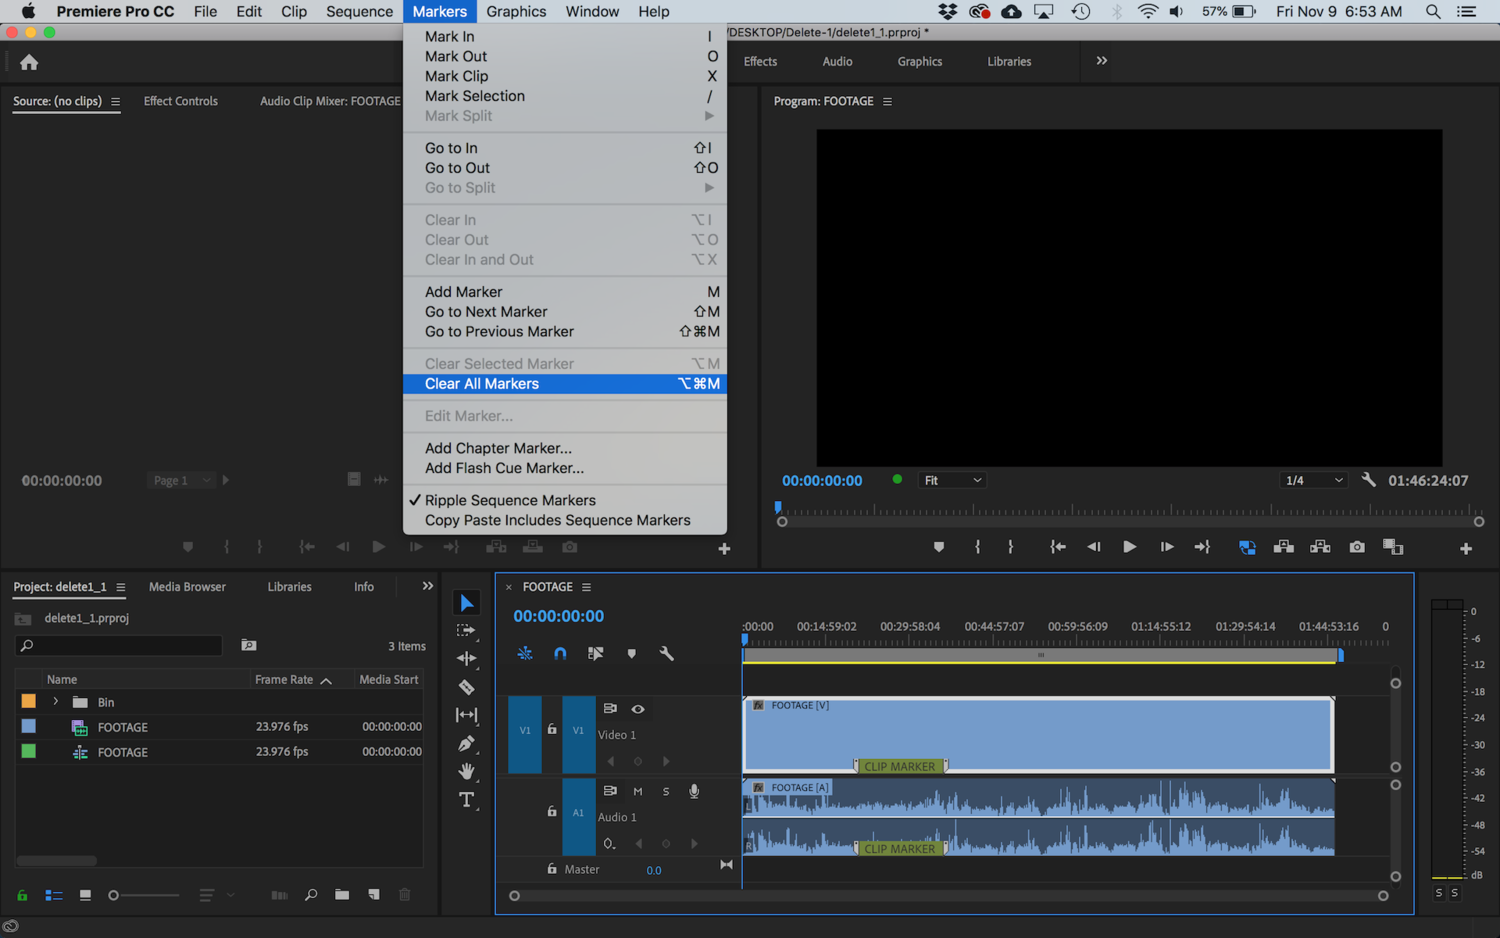 10 Little Features in Premiere Pro CC 2019 — Premiere Bro